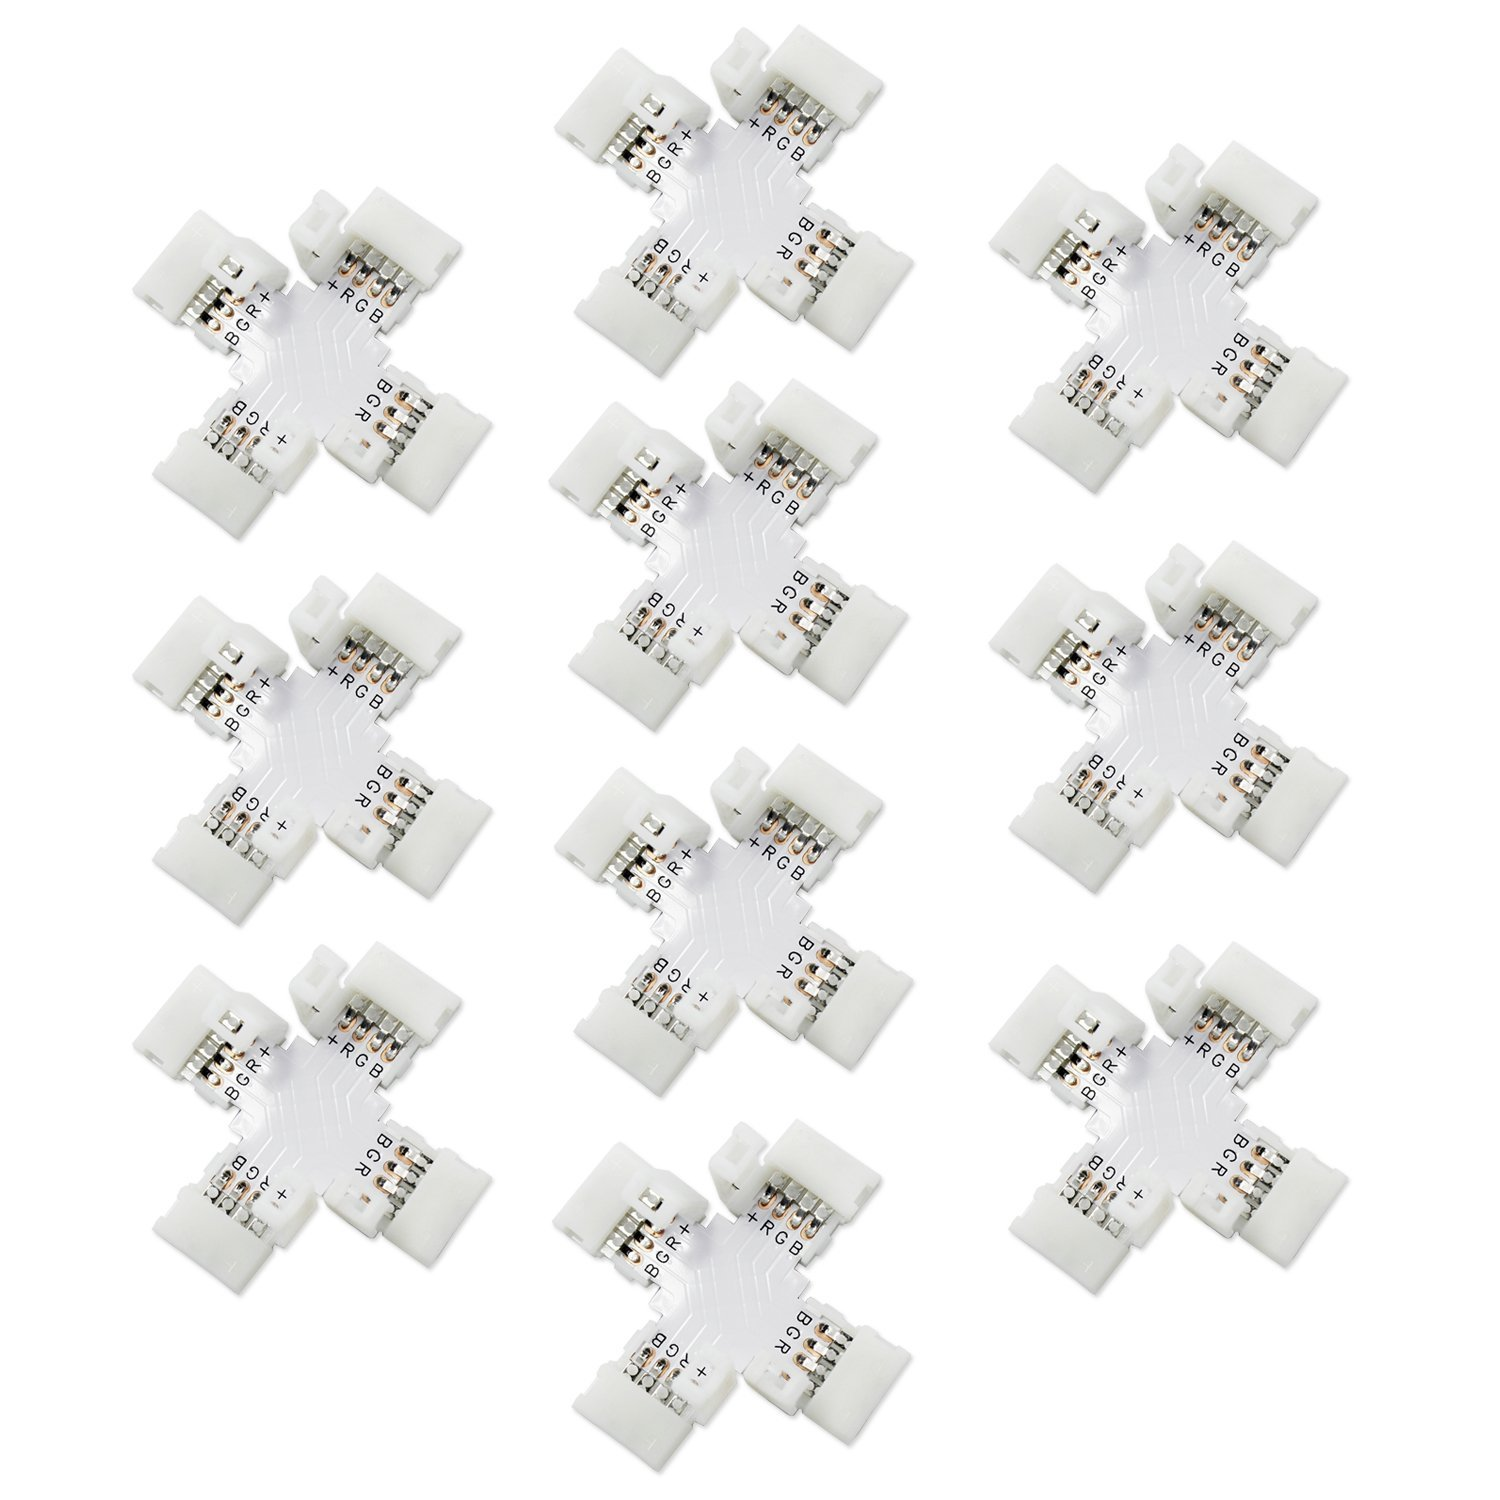 ESUMIC® 4 Pins Connector 10mm for 5050/3528 SMD RGB Non-waterproof LED Flexible Strip Lights 10 Pack (+shape)